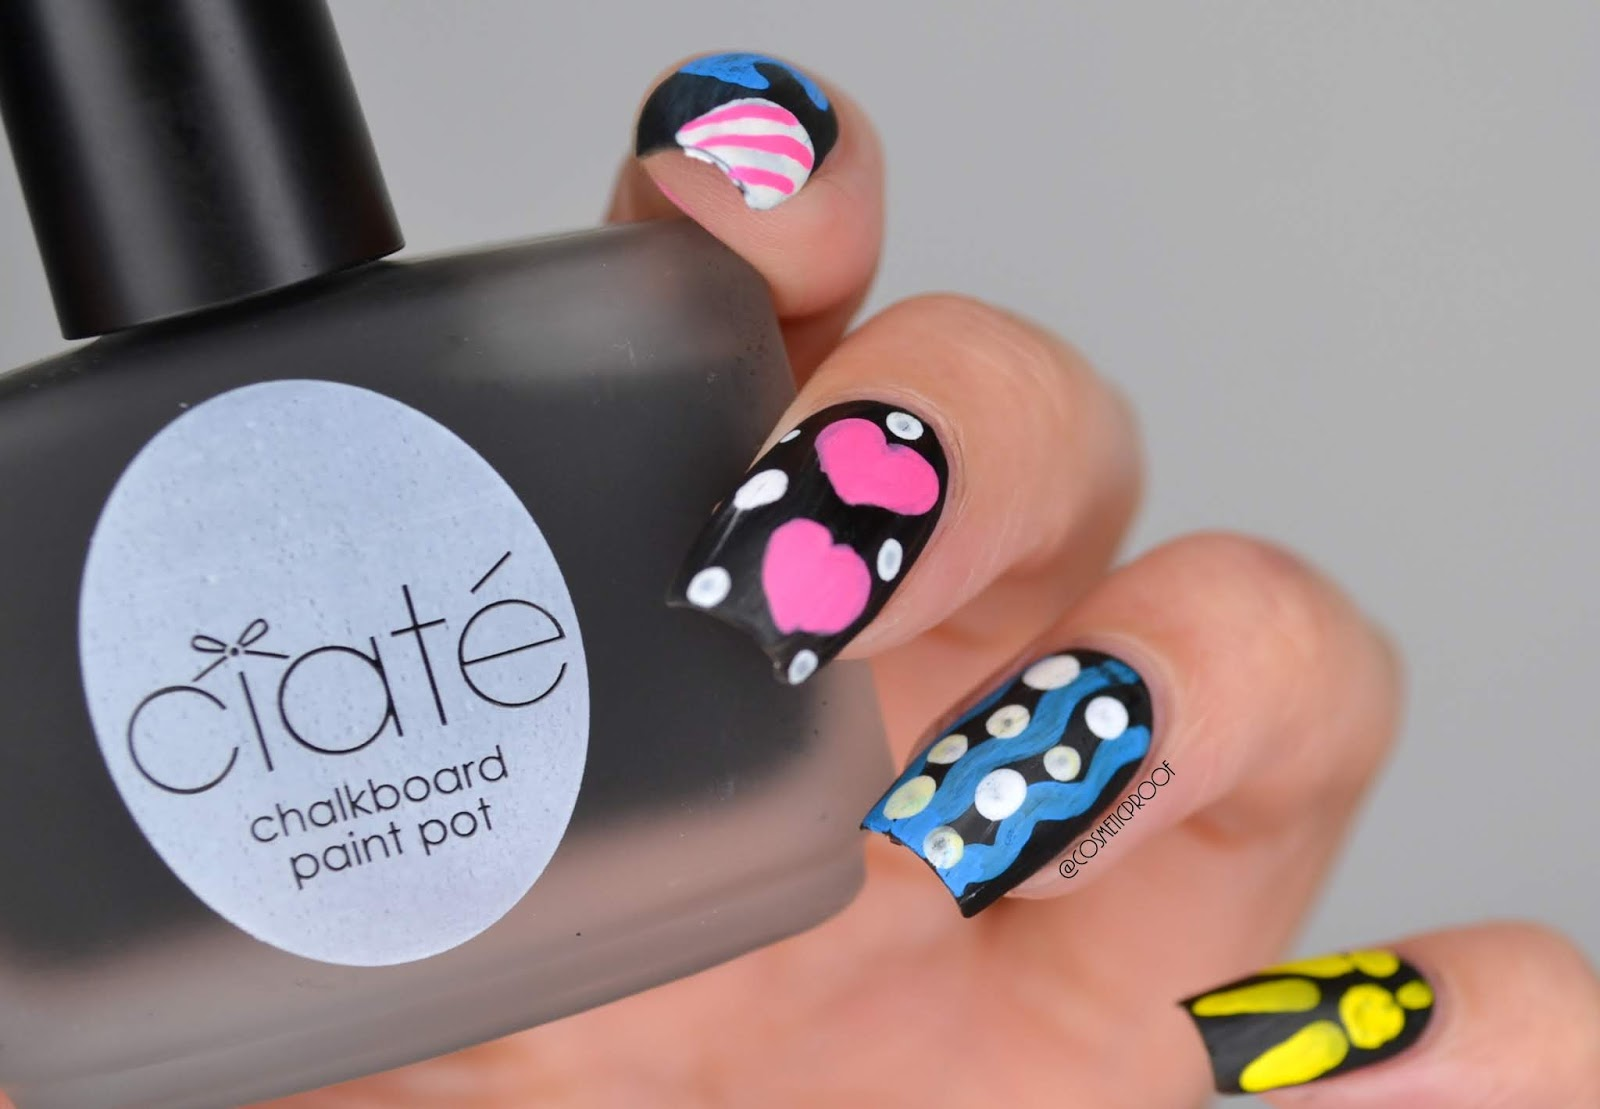 NAILS | Ciate Chalkboard Nails #CBBxManiMonday | Cosmetic Proof ...